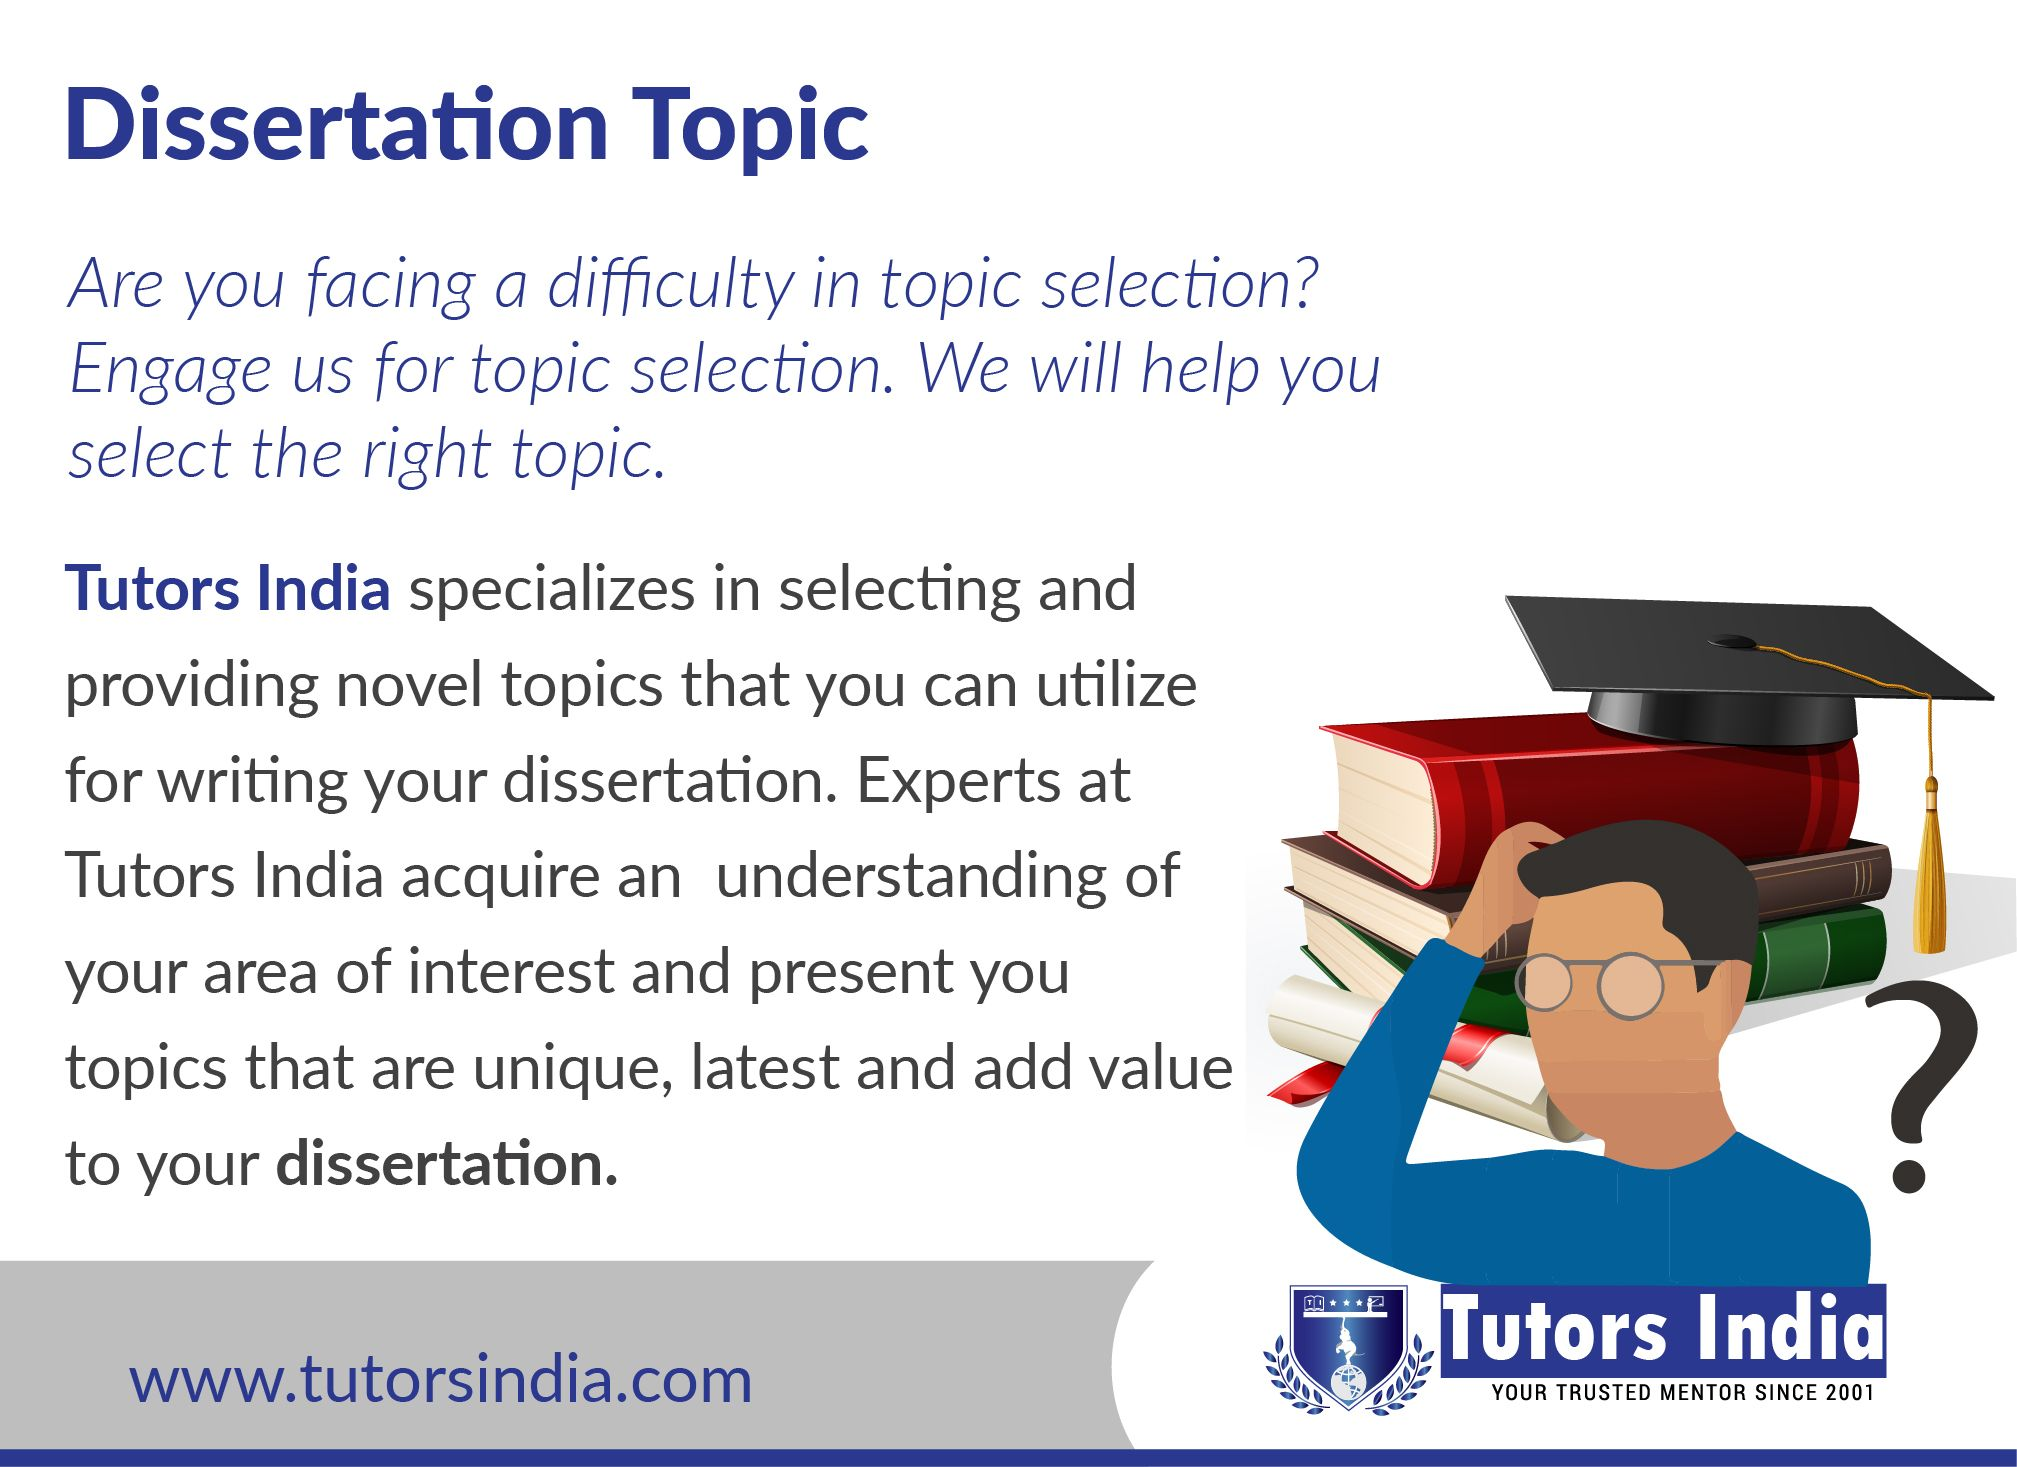 Tutor India Specialize In Selecting And Providing Novel Research Uk Master S Phd Level Topic That You Can U Dissertation Thesi Writing Services How To Choose A